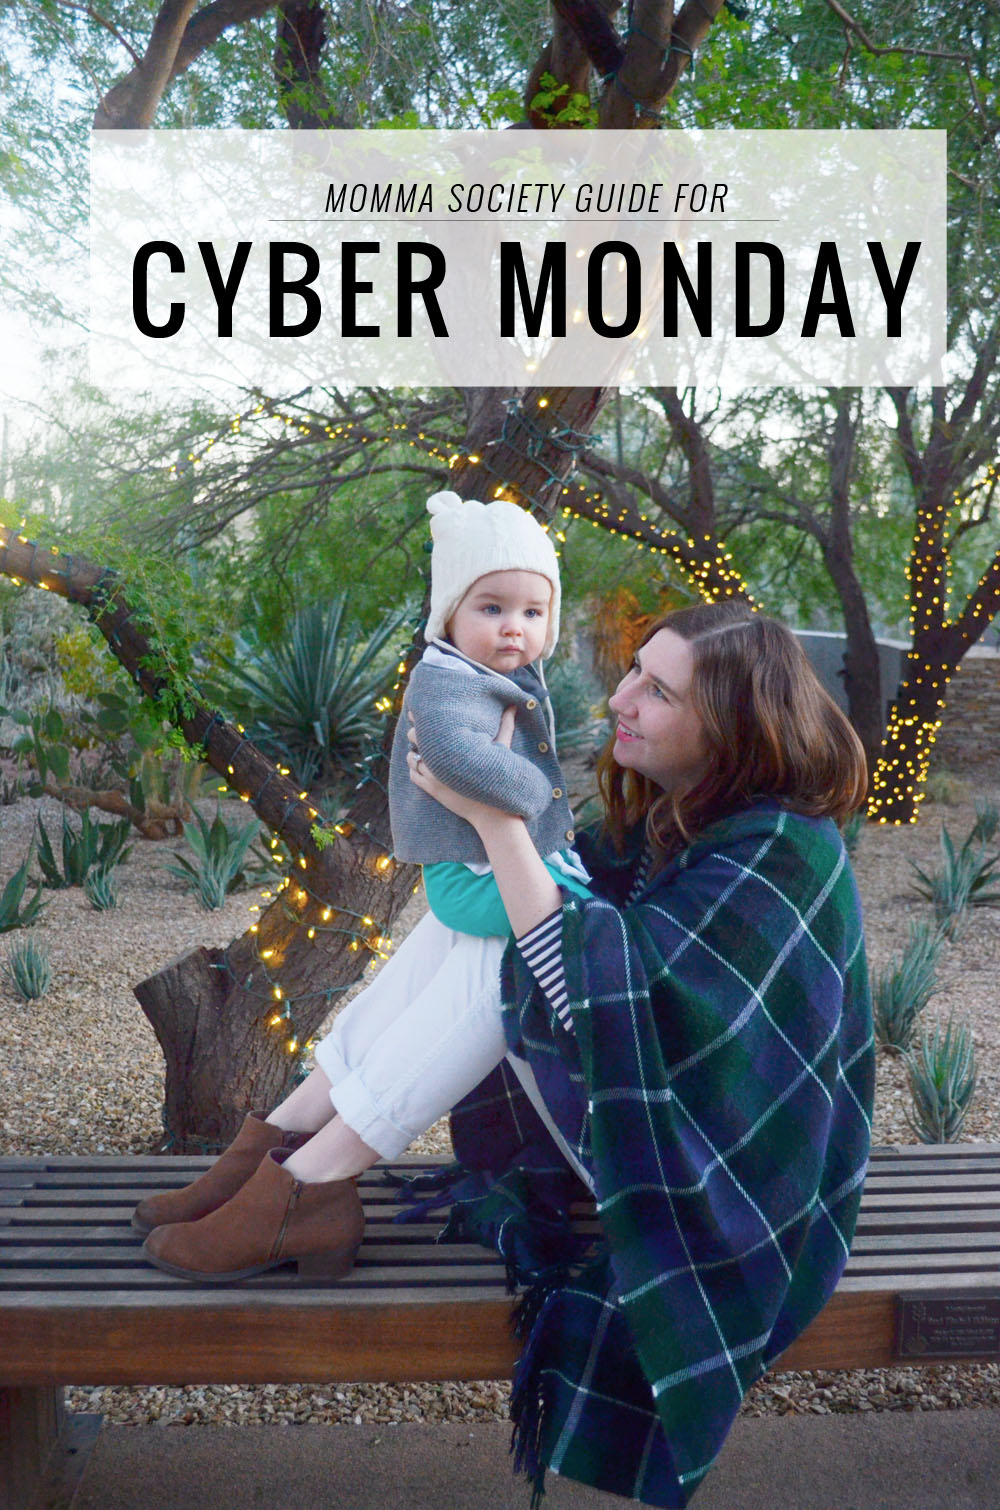 8 Cyber Monday Sales You Can't Afford To Miss | Momma Society-The Community of Modern Moms | www.MommaSociety.com